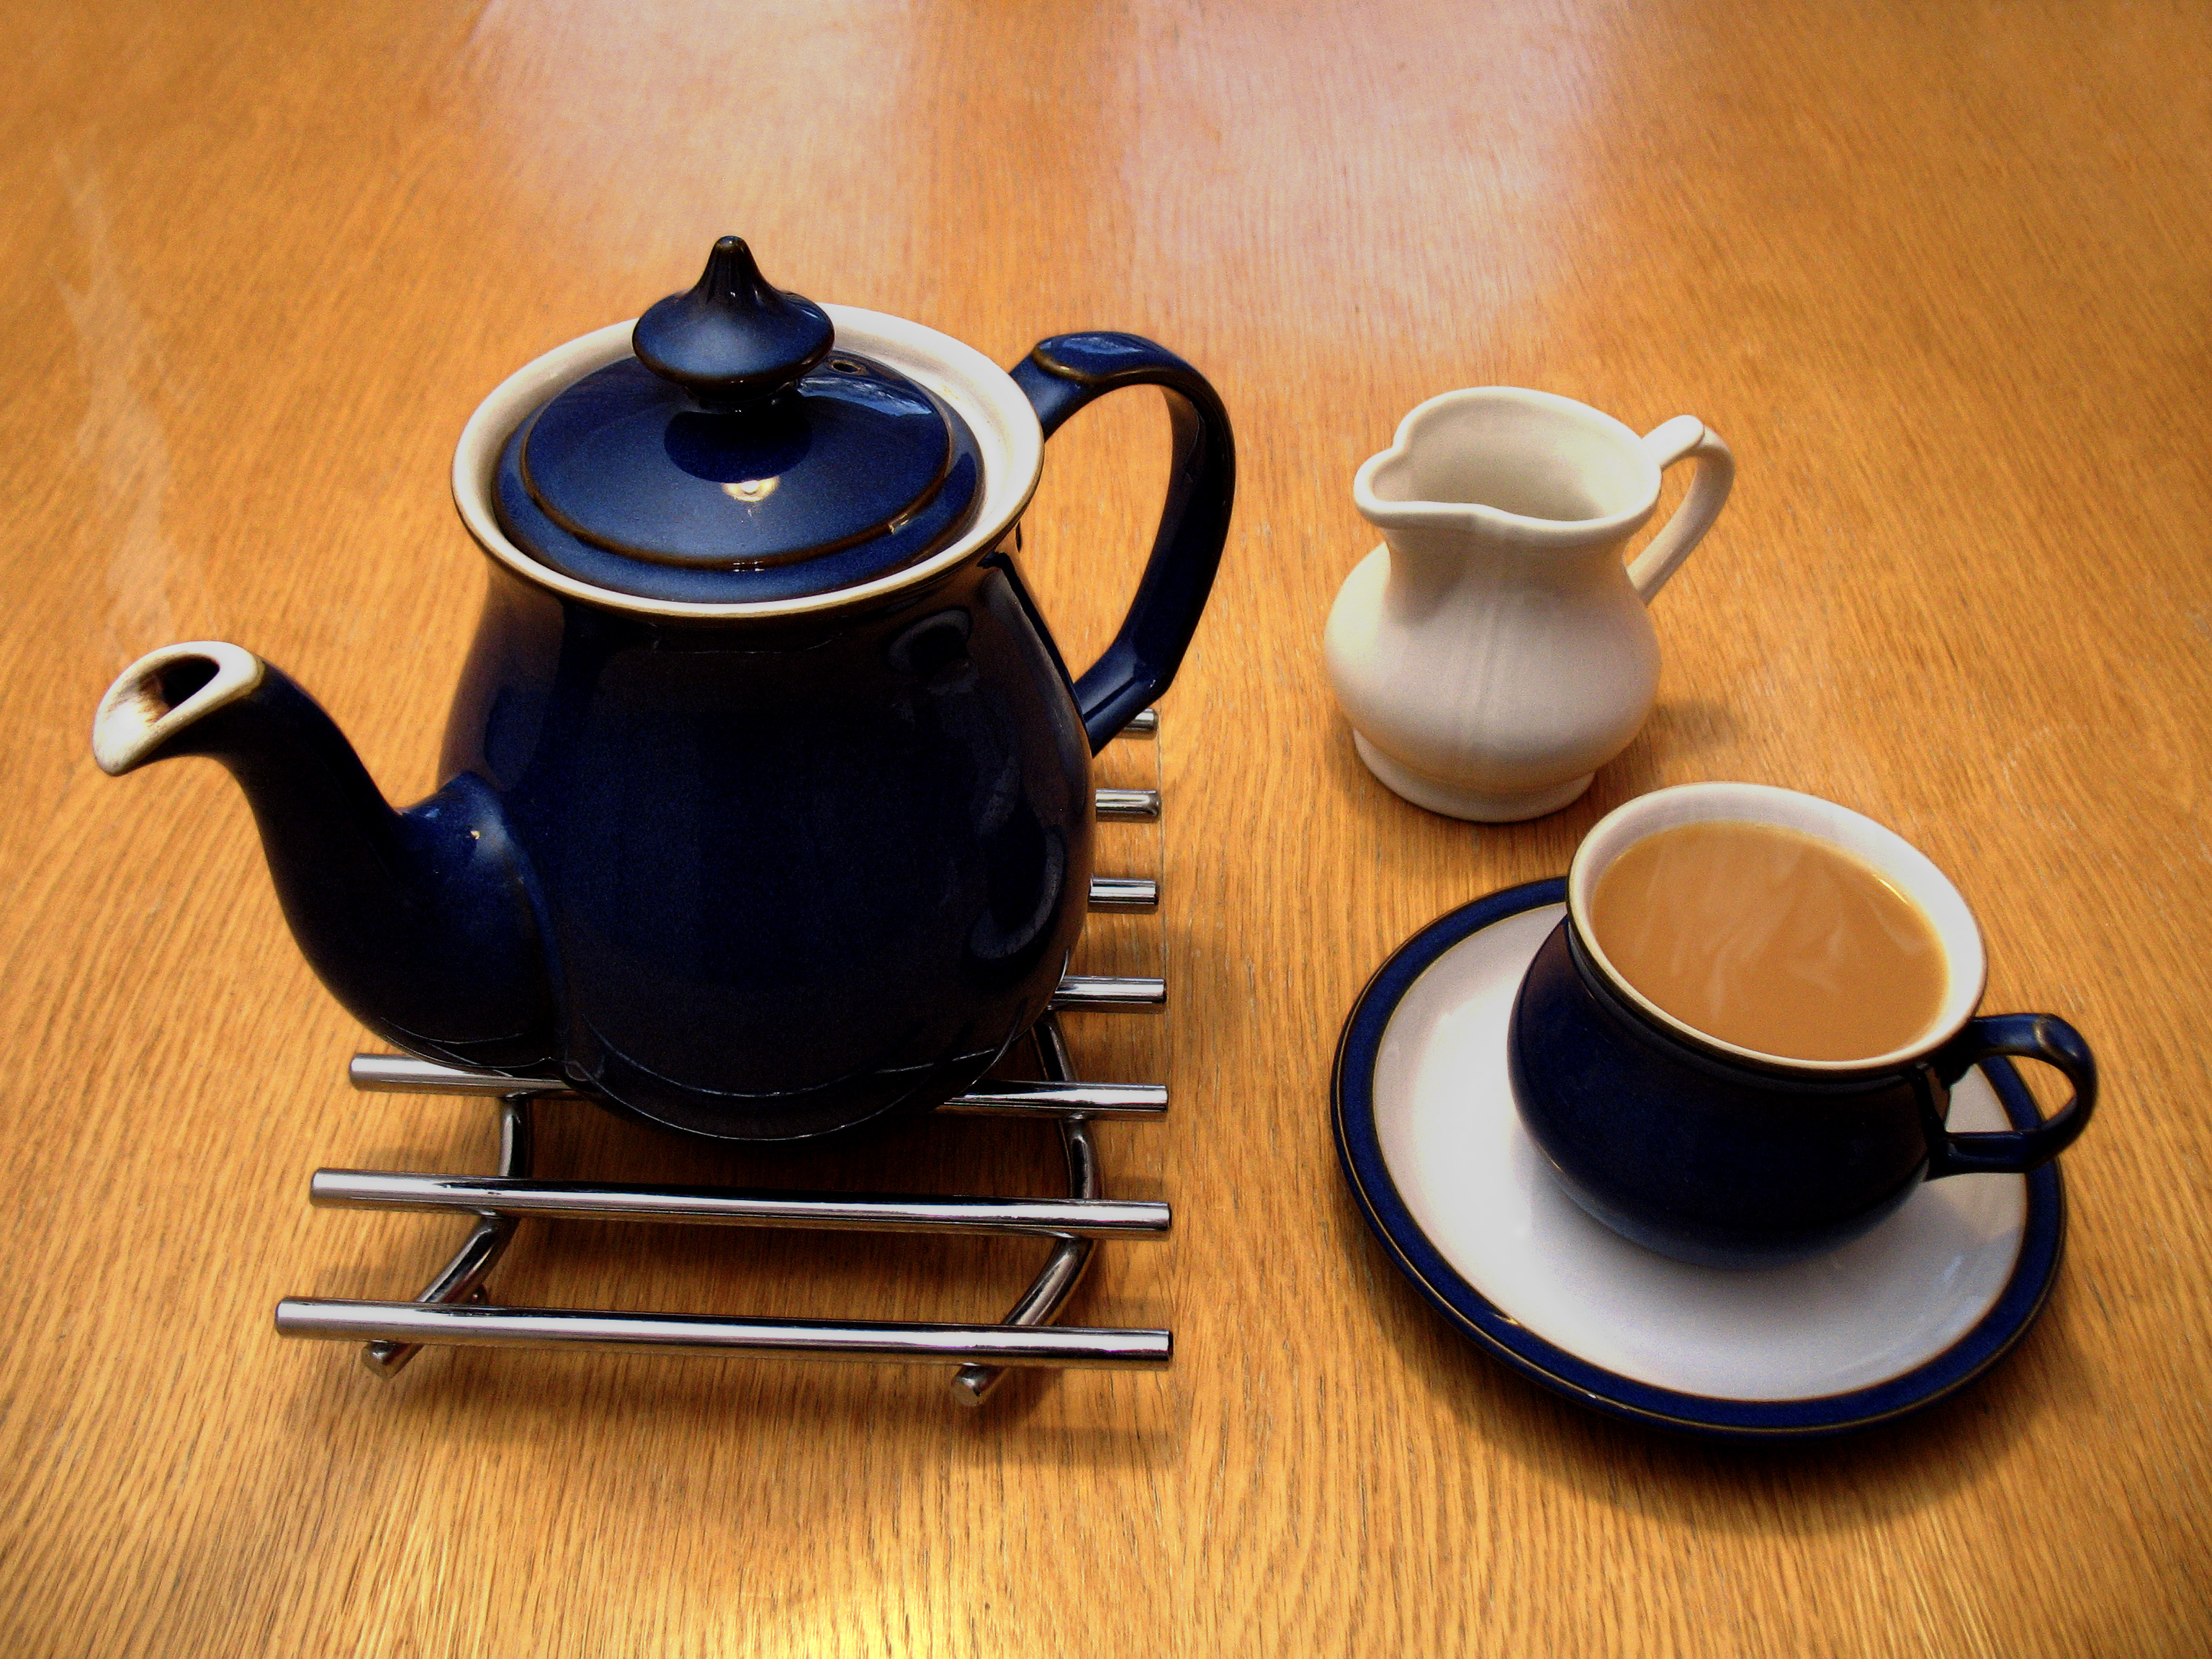 Tea Time to open 2,000 outlets in another 18 months